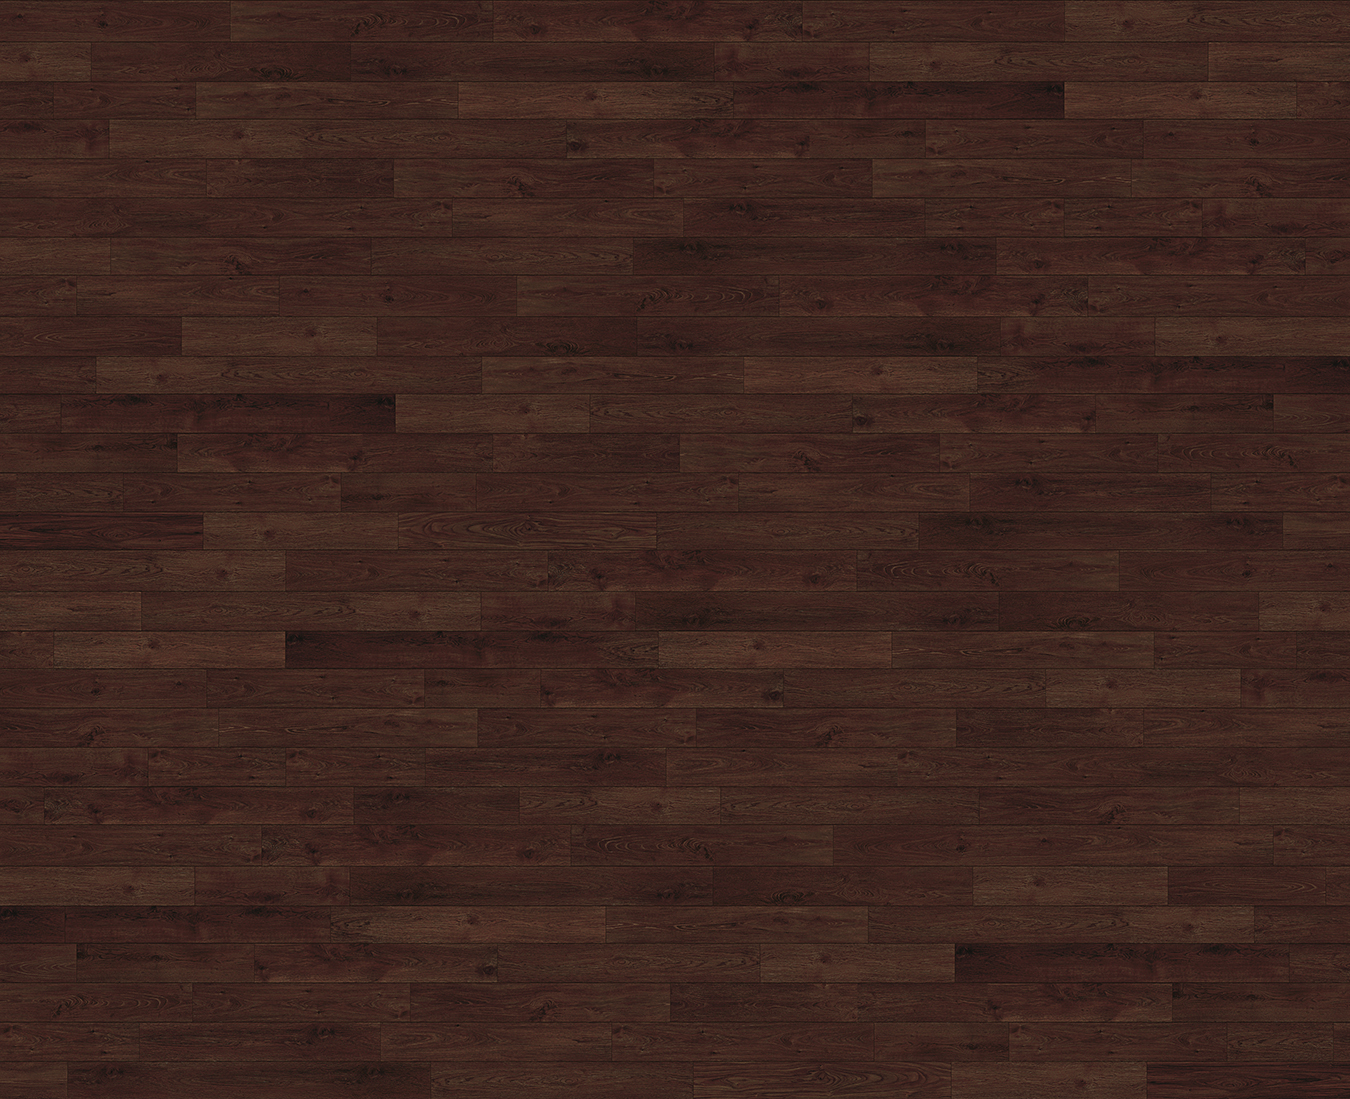 66_parquet medium color-seamless.jpg